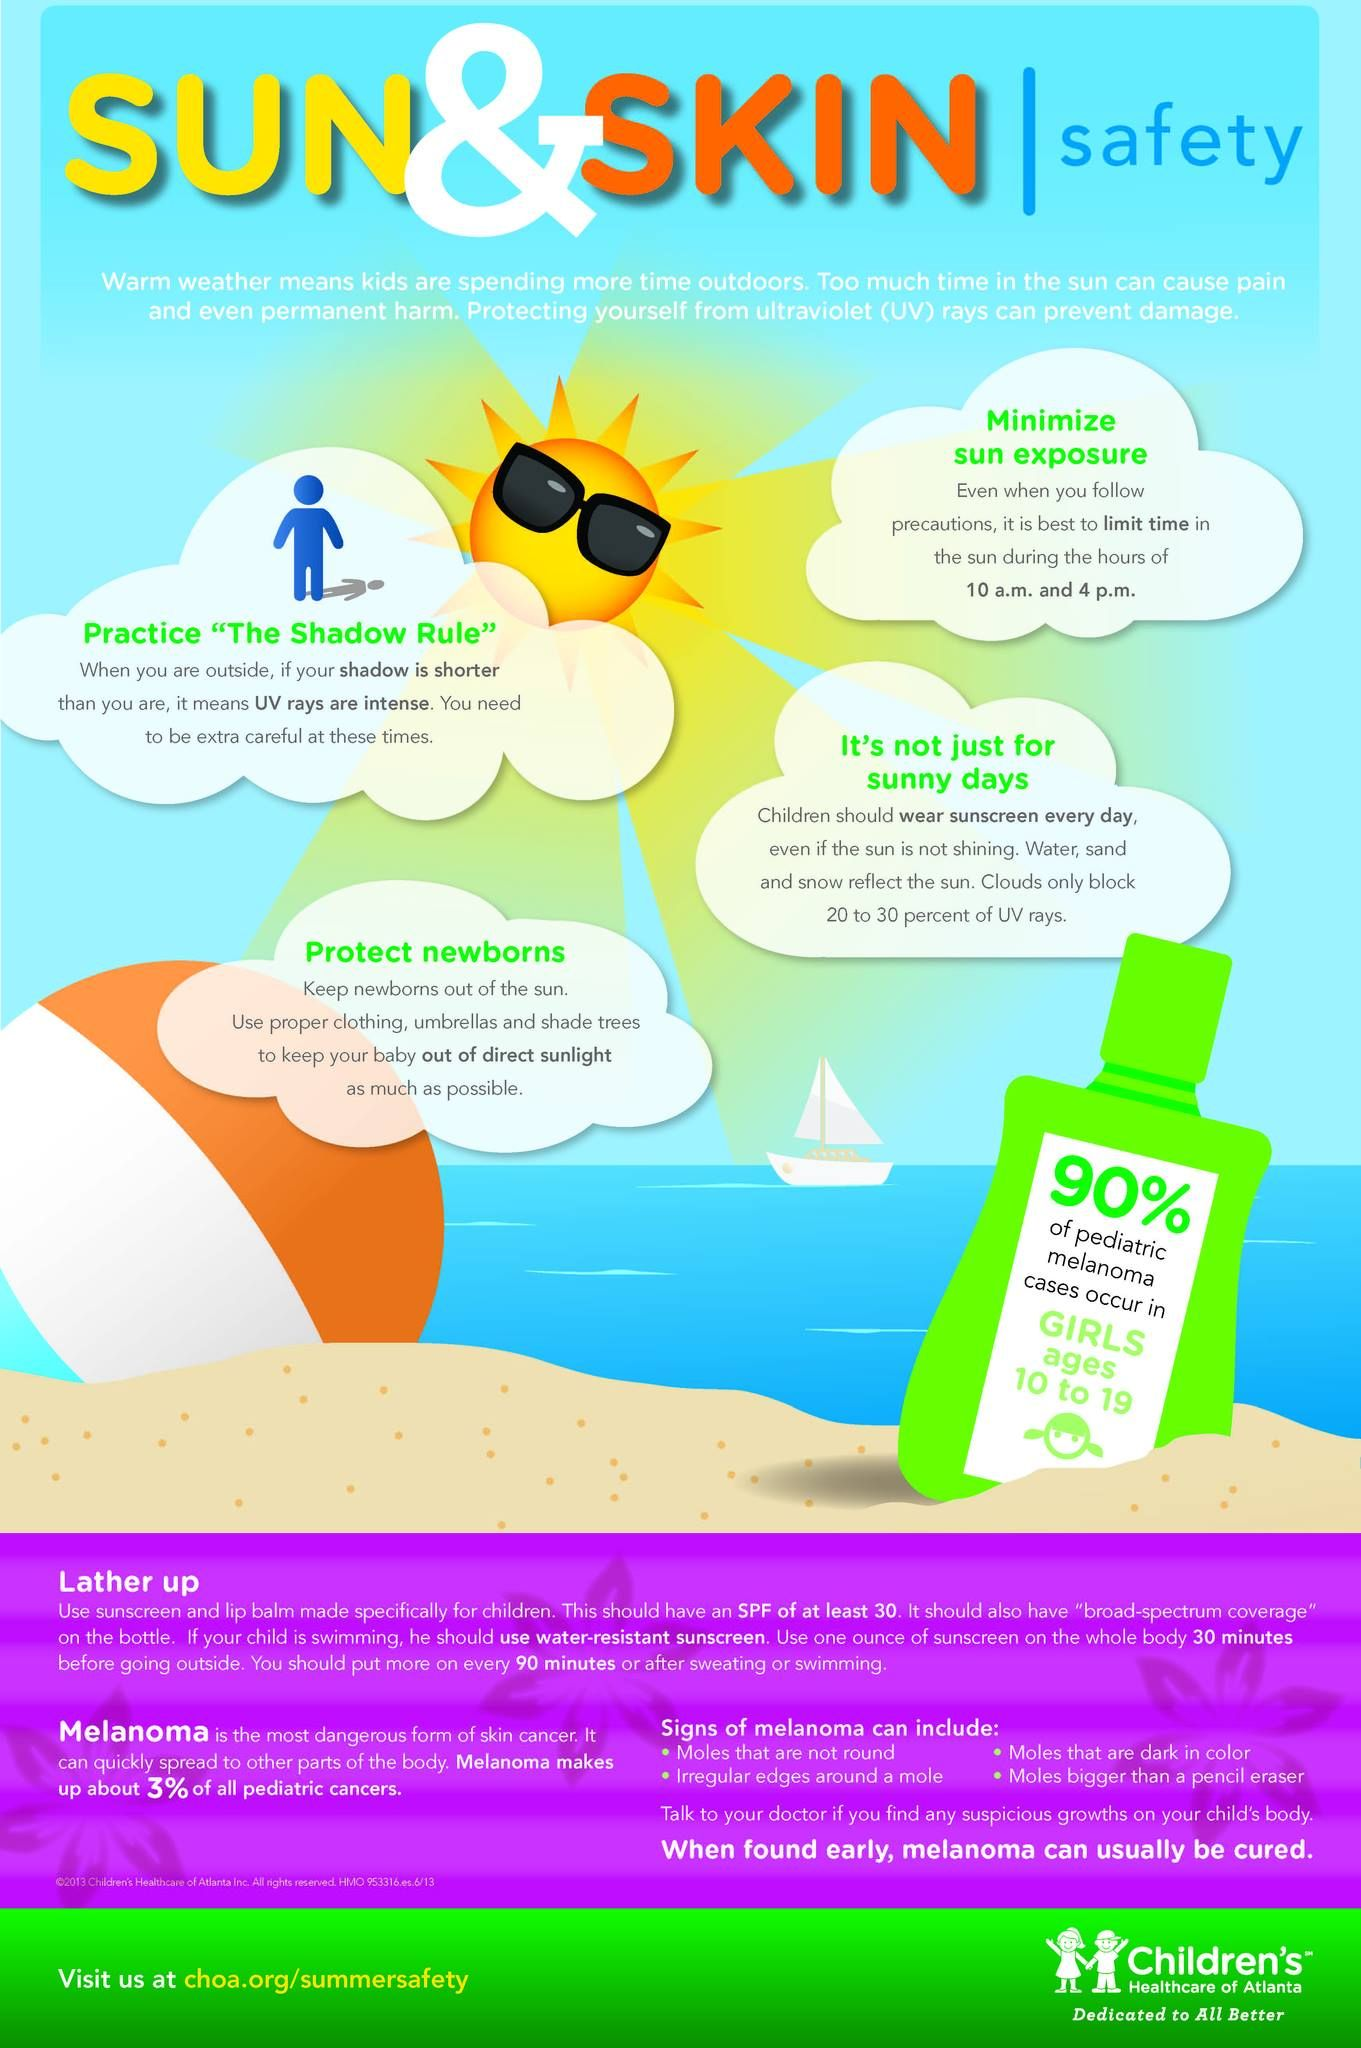 9bfc7fa7a42 Now that the warm weather is in full force, kids are eager to enjoy outdoor  activities. Unfortunately, excessive exposure to the sun can cause  suffering and ...